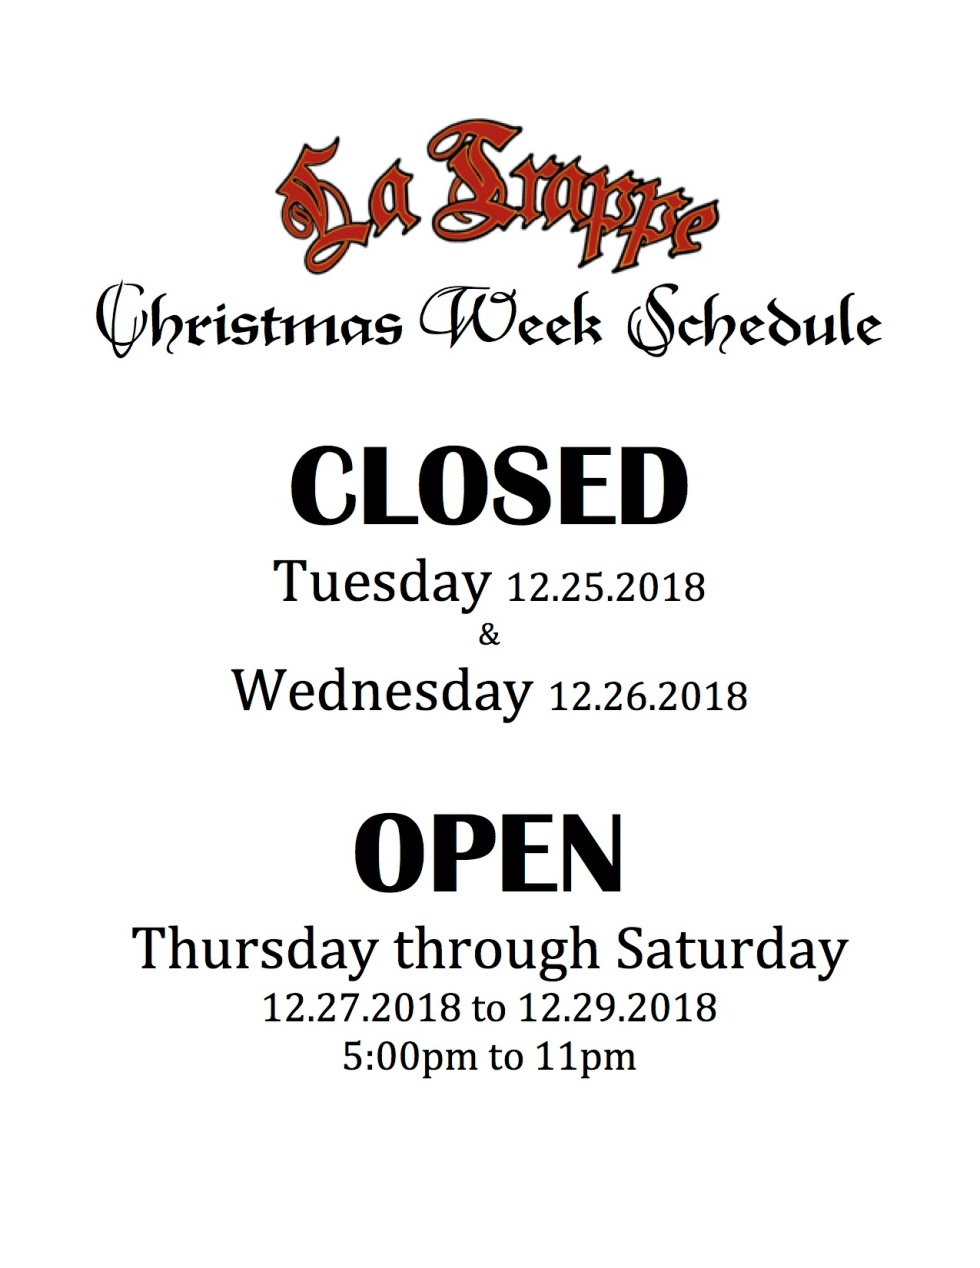 Christmas Week Schedule